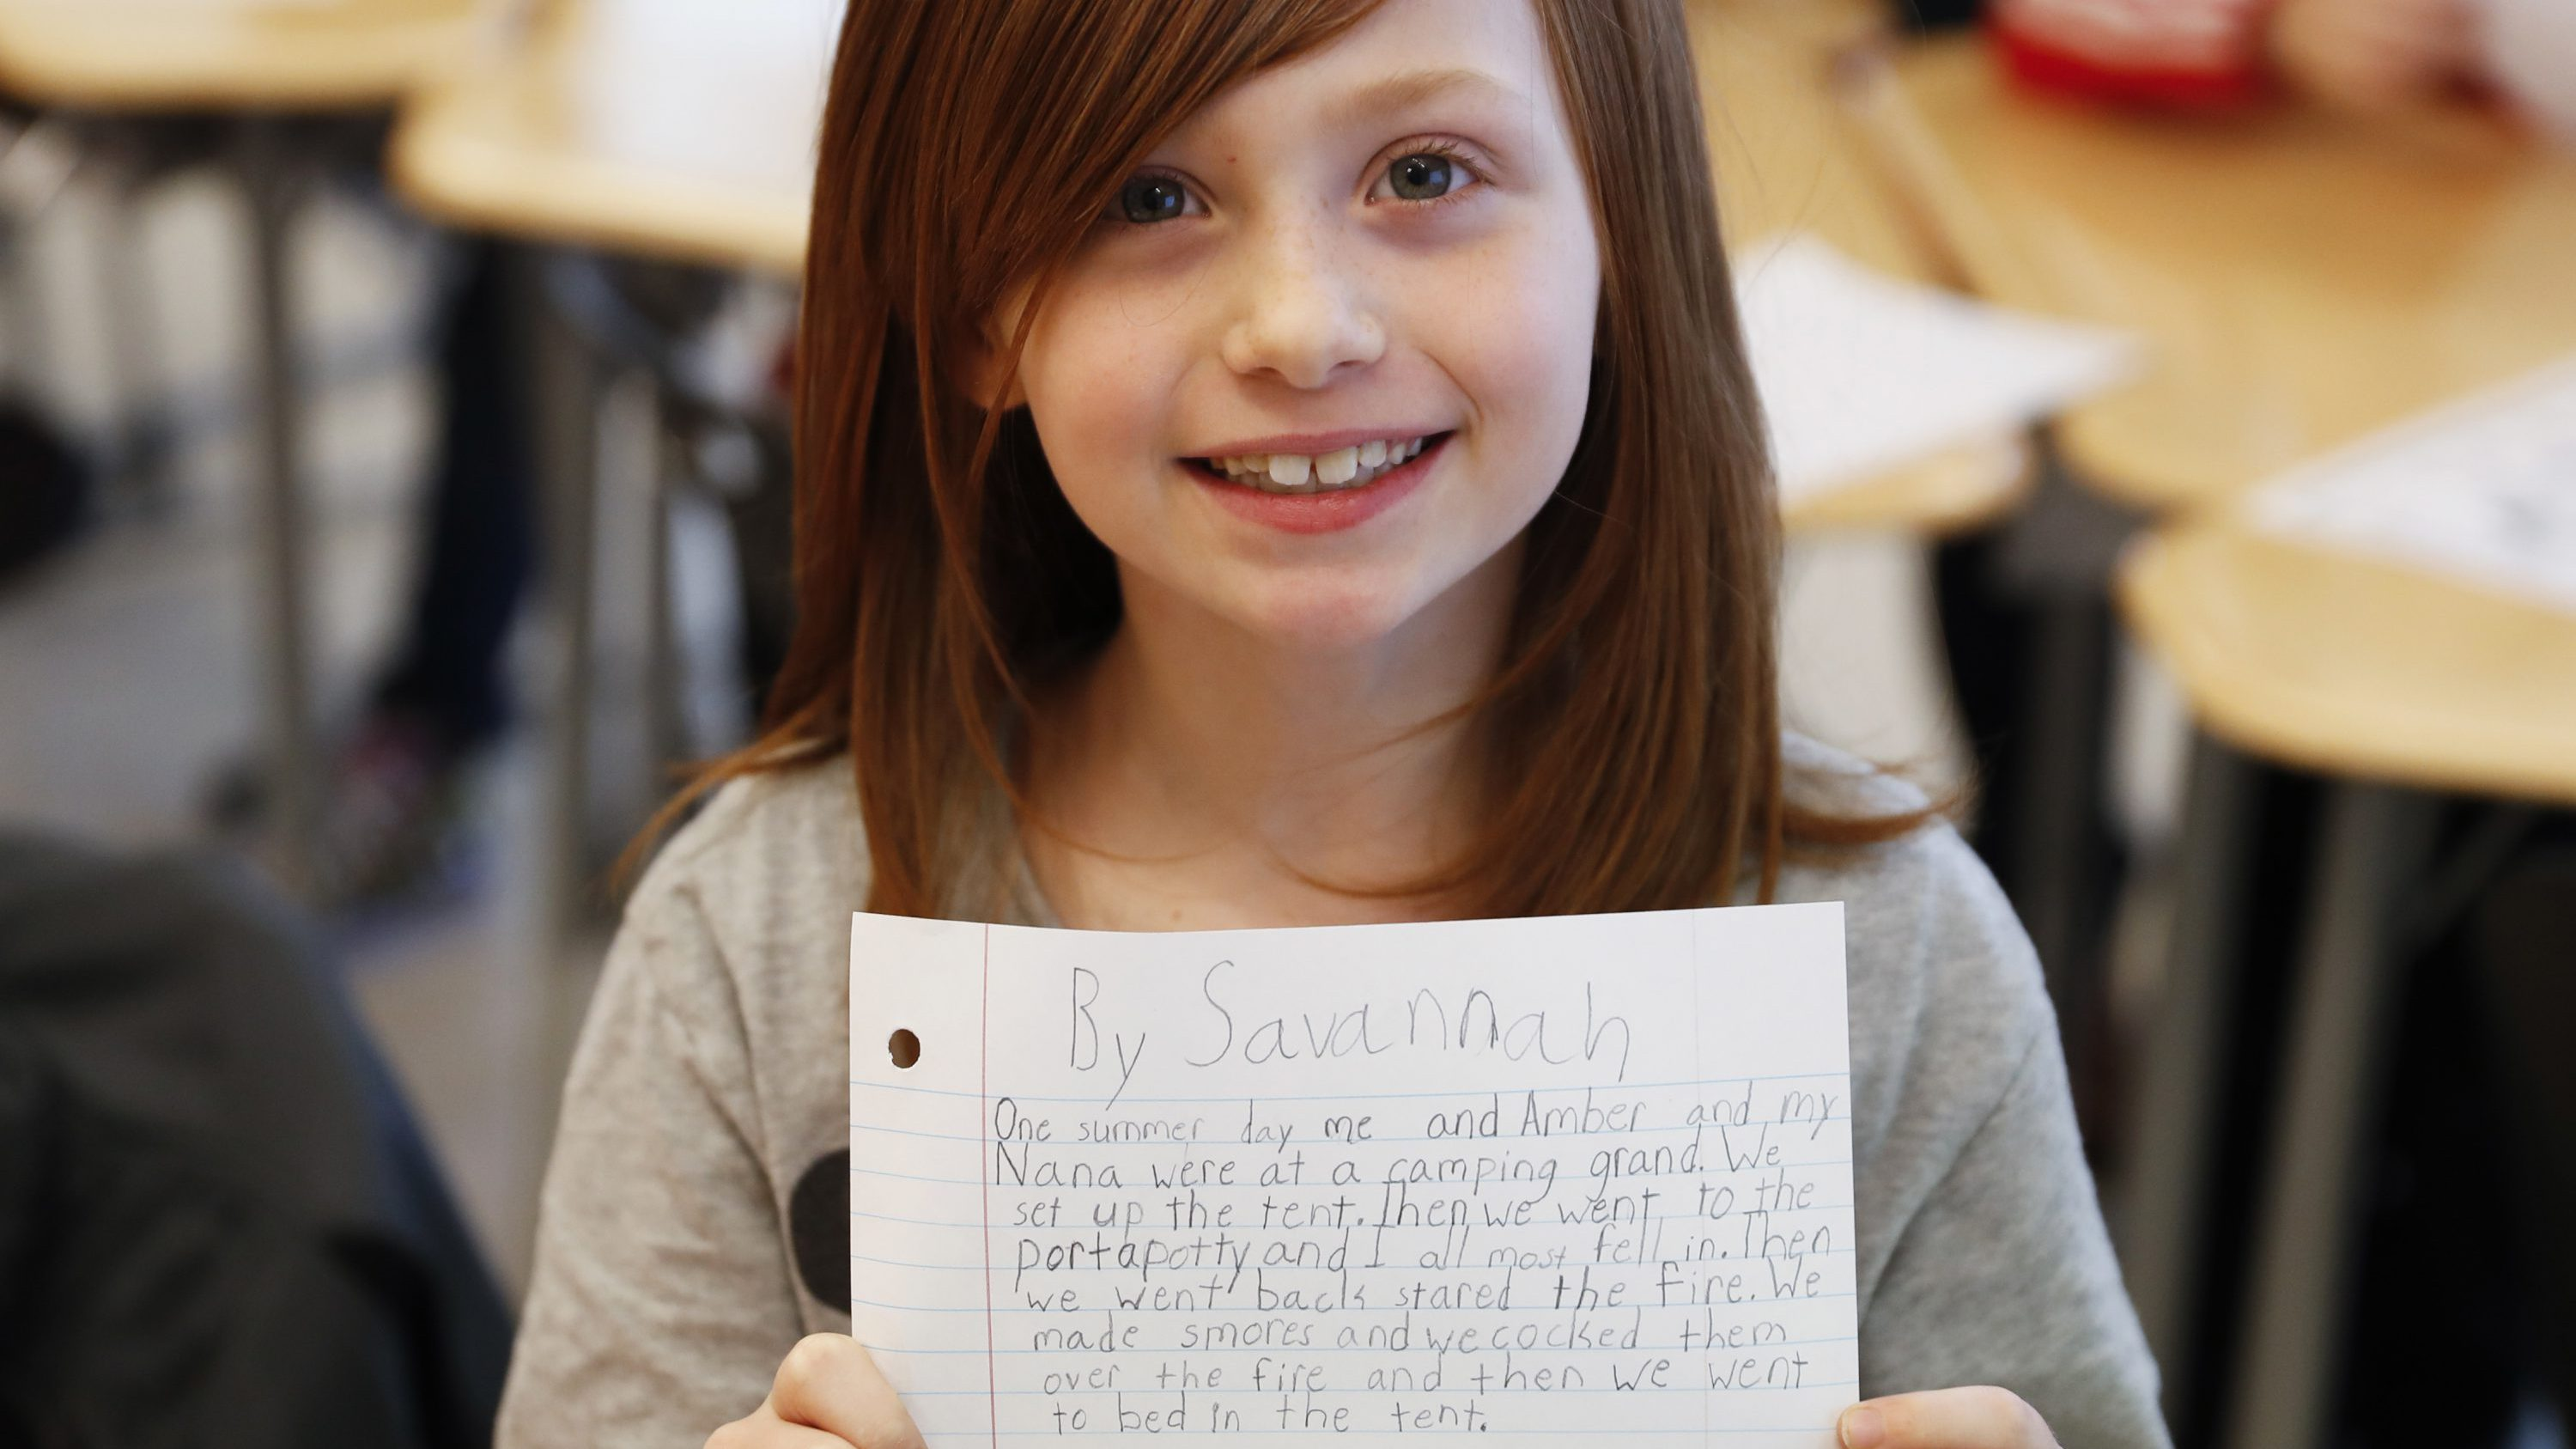 A student holds up her unfinished homework during an after-school program at Circleville Elementary School, Wednesday, March 29, 2017, in Circleville, Ohio. Circleville school officials said it would be very difficult to keep their after-school programs going if federal funding for the 21st Century Community Learning Centers program is eliminated as proposed by President Donald Trump's administration.